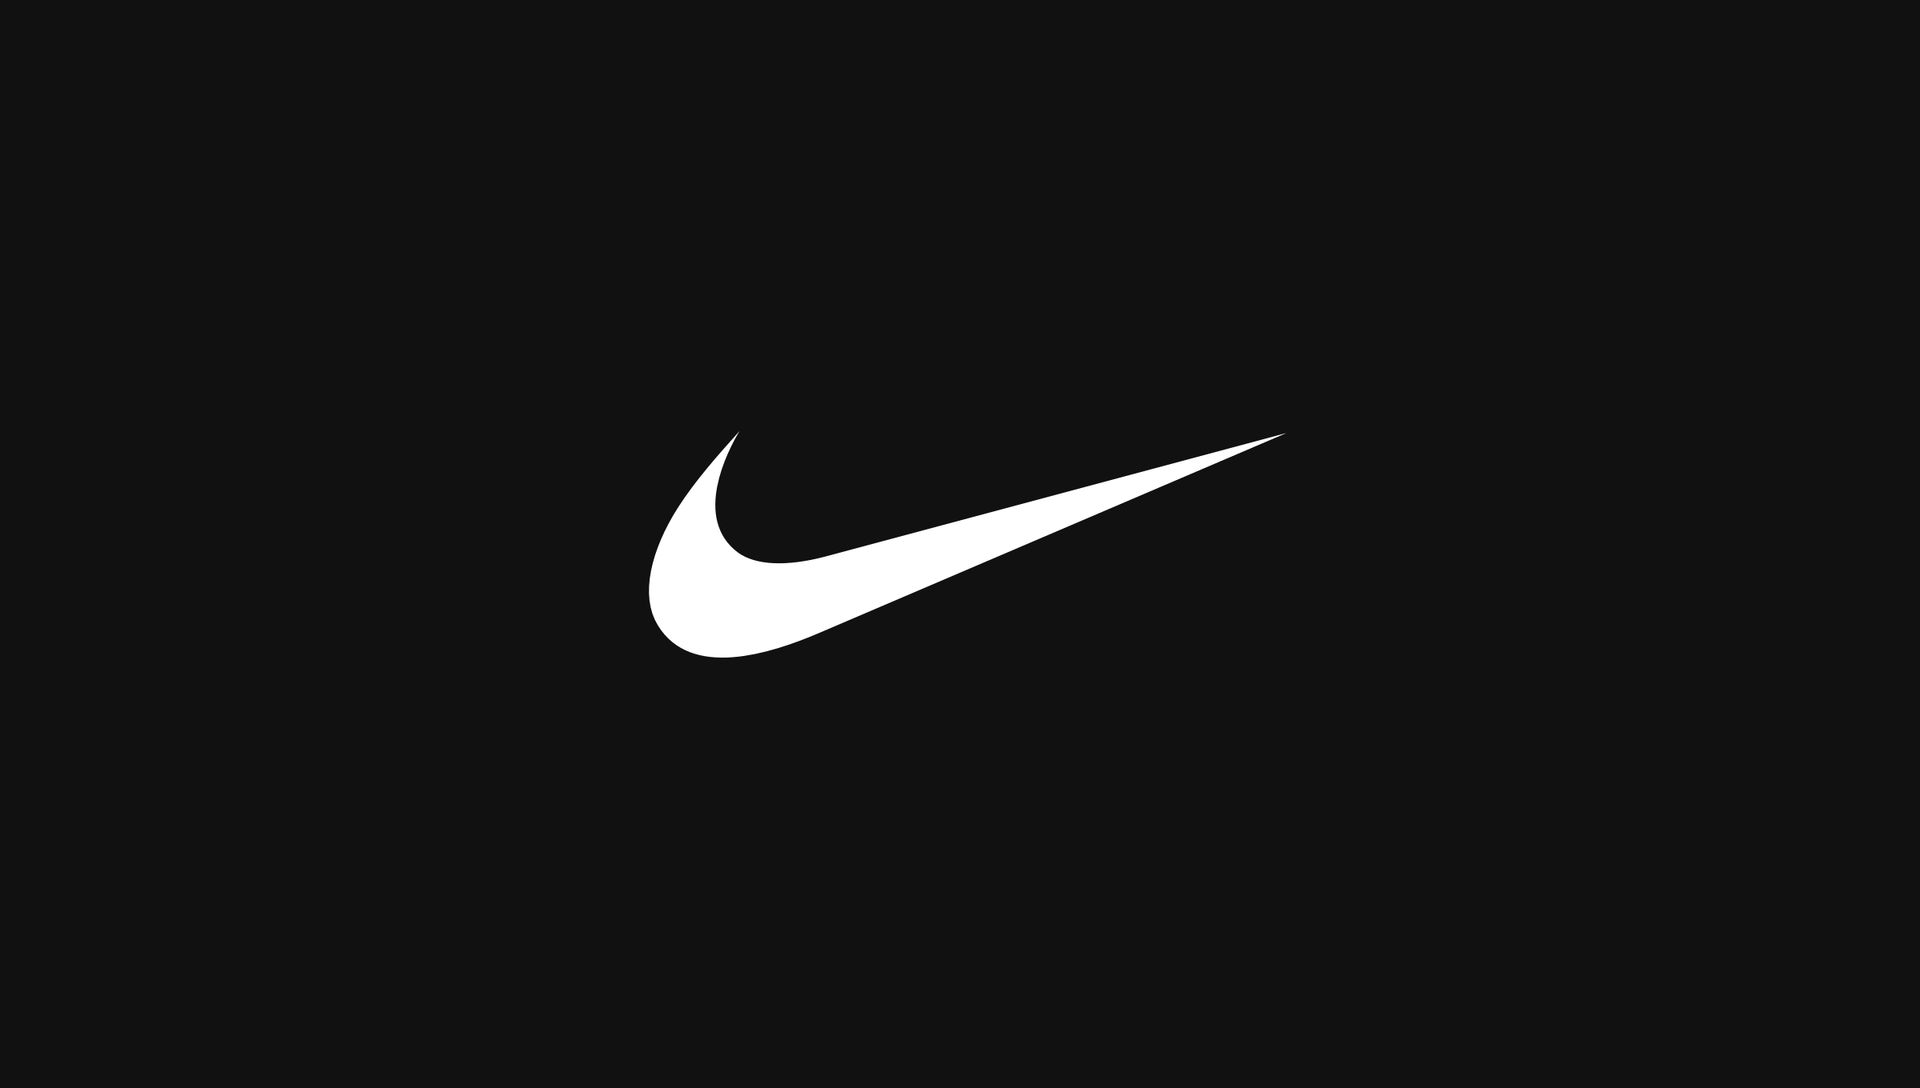 Nike. Just Do It. Nike.com 61766bbd6b2